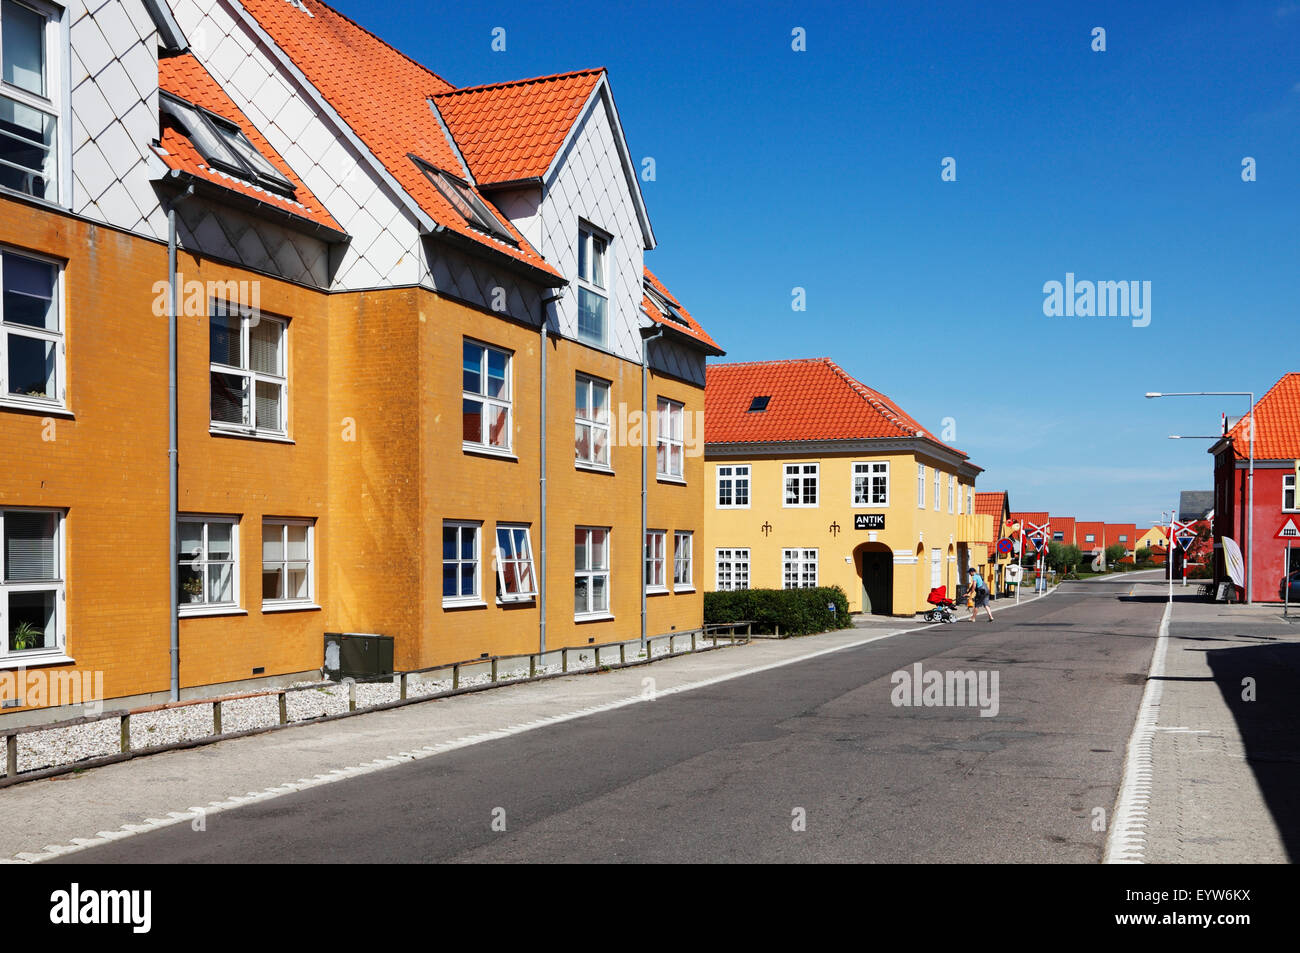 Nørregade, the main street of Hundested, North Sealand, Denmark, on at sunny summer morning with a blue sky - Stock Image